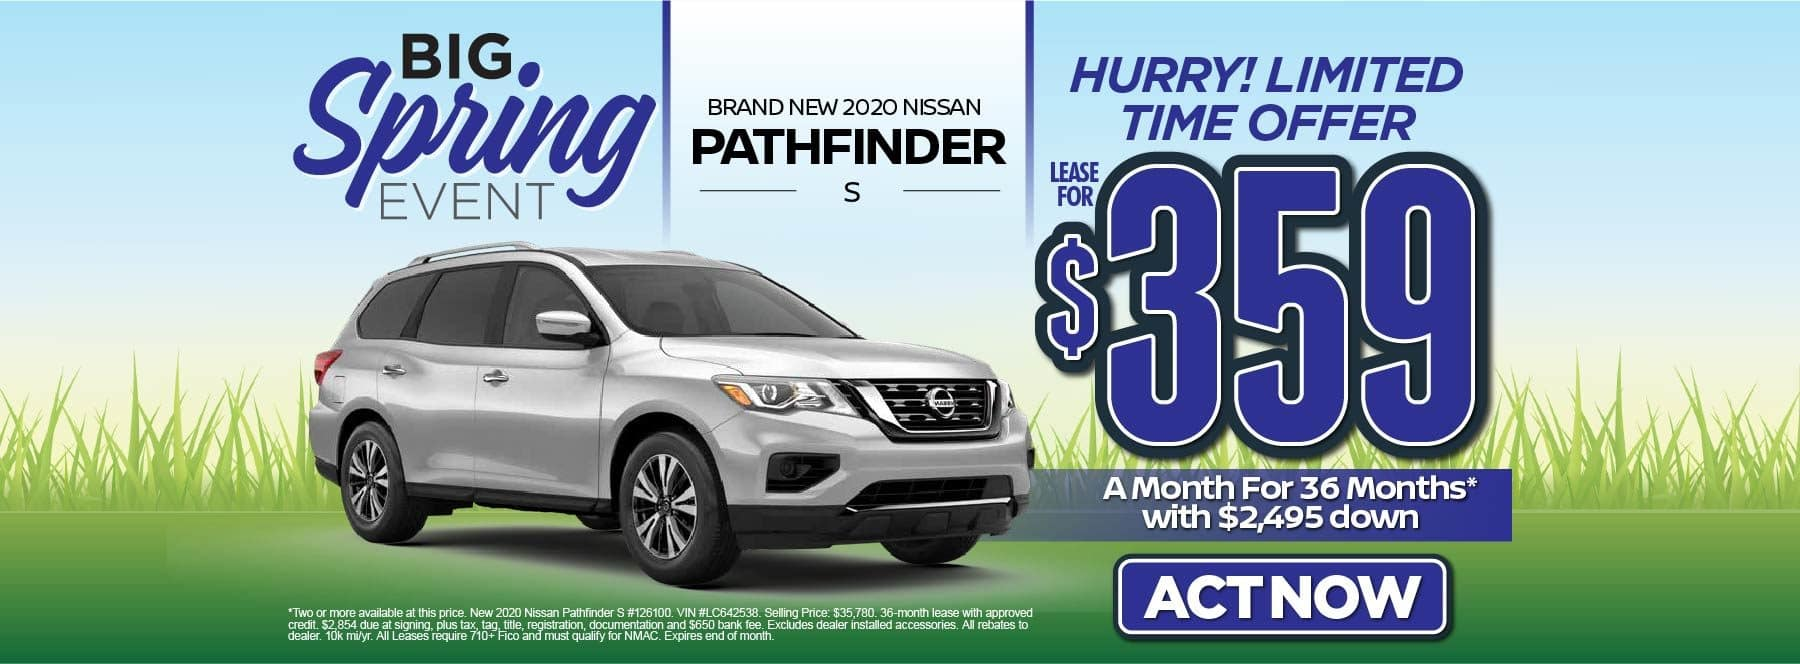 New 2020 Nissan Pathfinder S – Lease for $359/mo for 36 months with $2,495 Down* Act now.